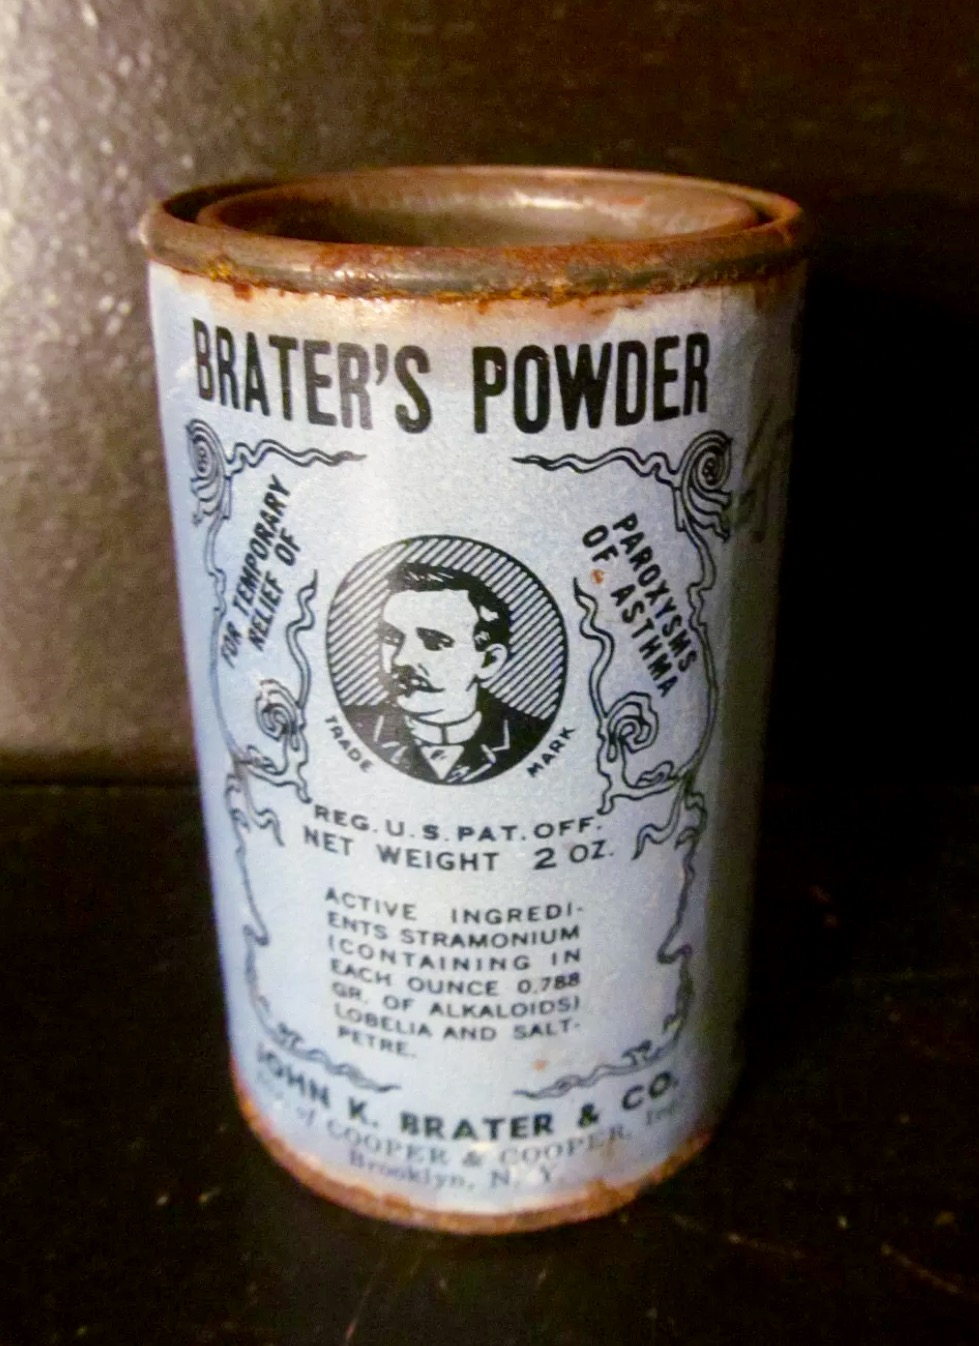 Brater's Powder